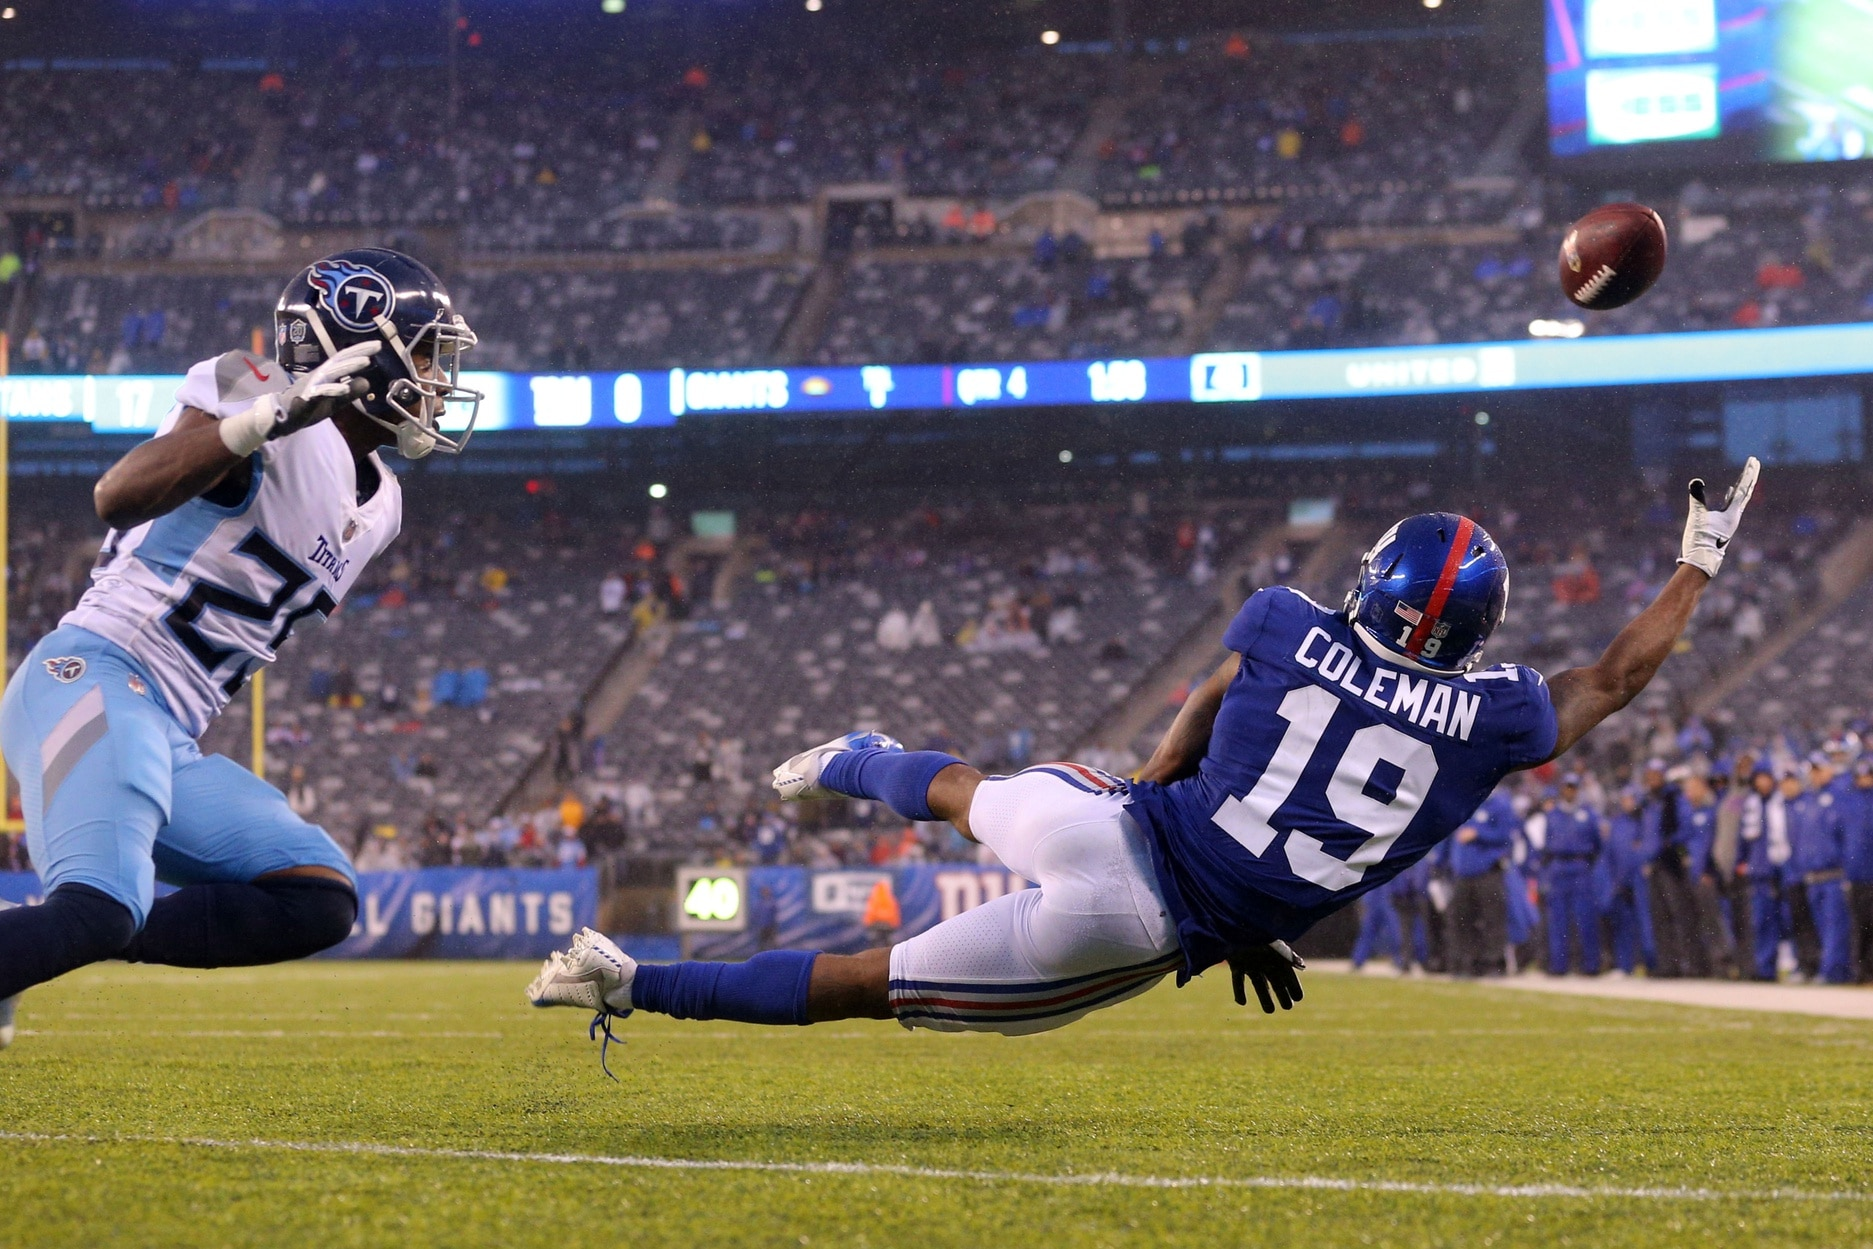 Redskins could benefit from Giants reportedly trading Odell Beckham Jr. to Browns